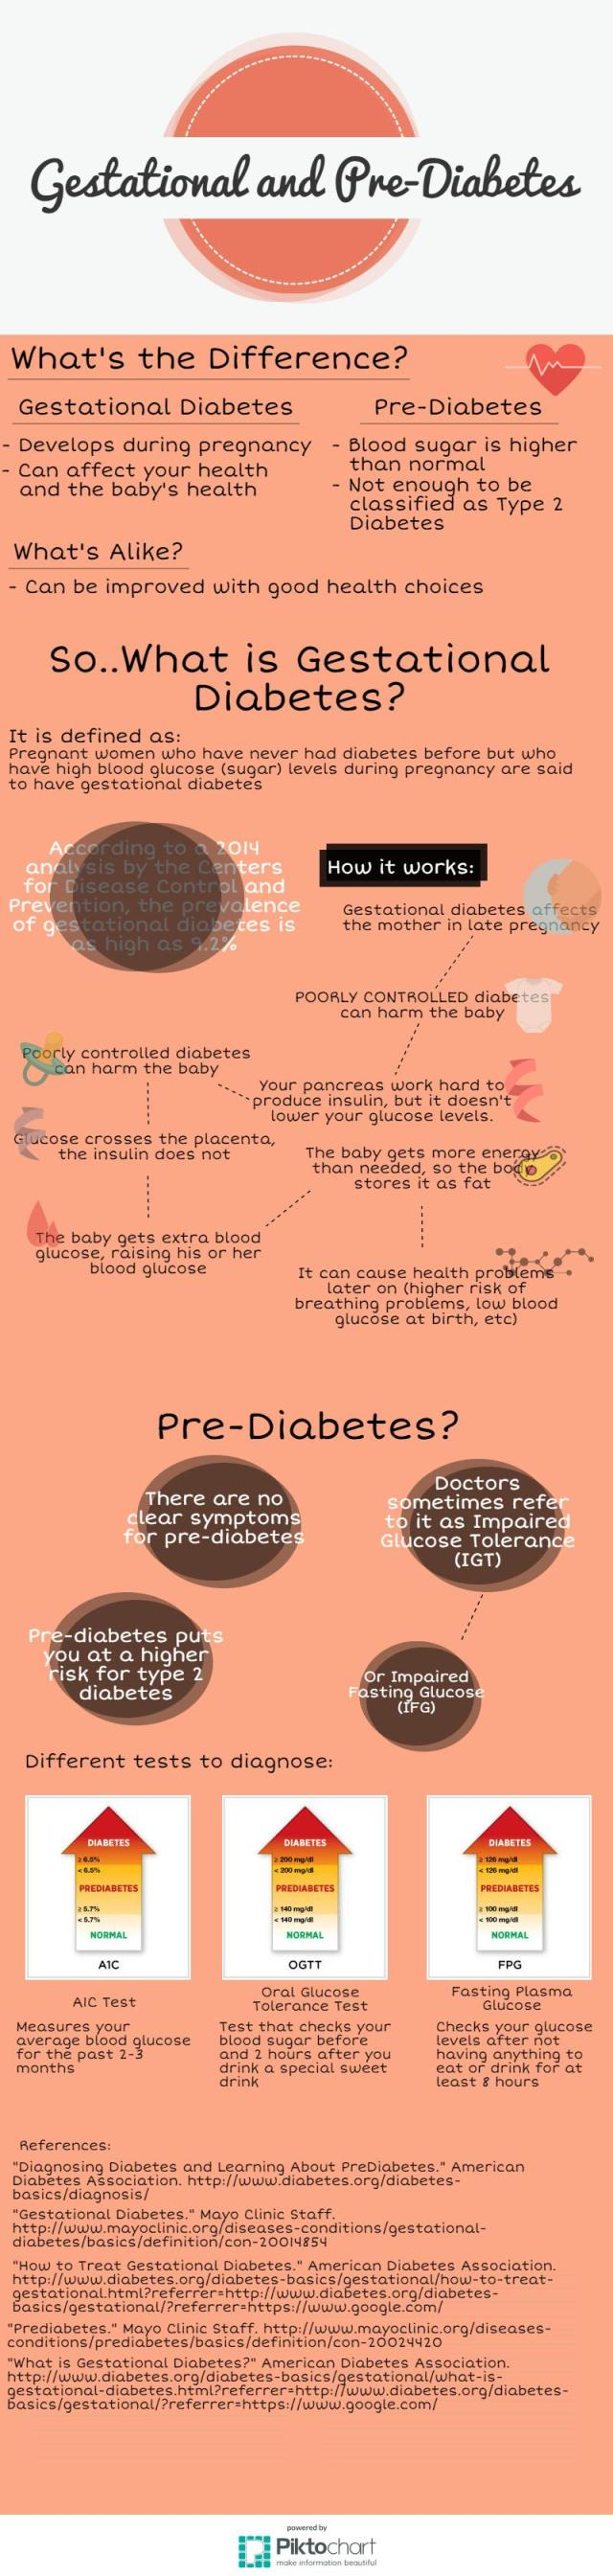 gestational_diabetes_prediabetes